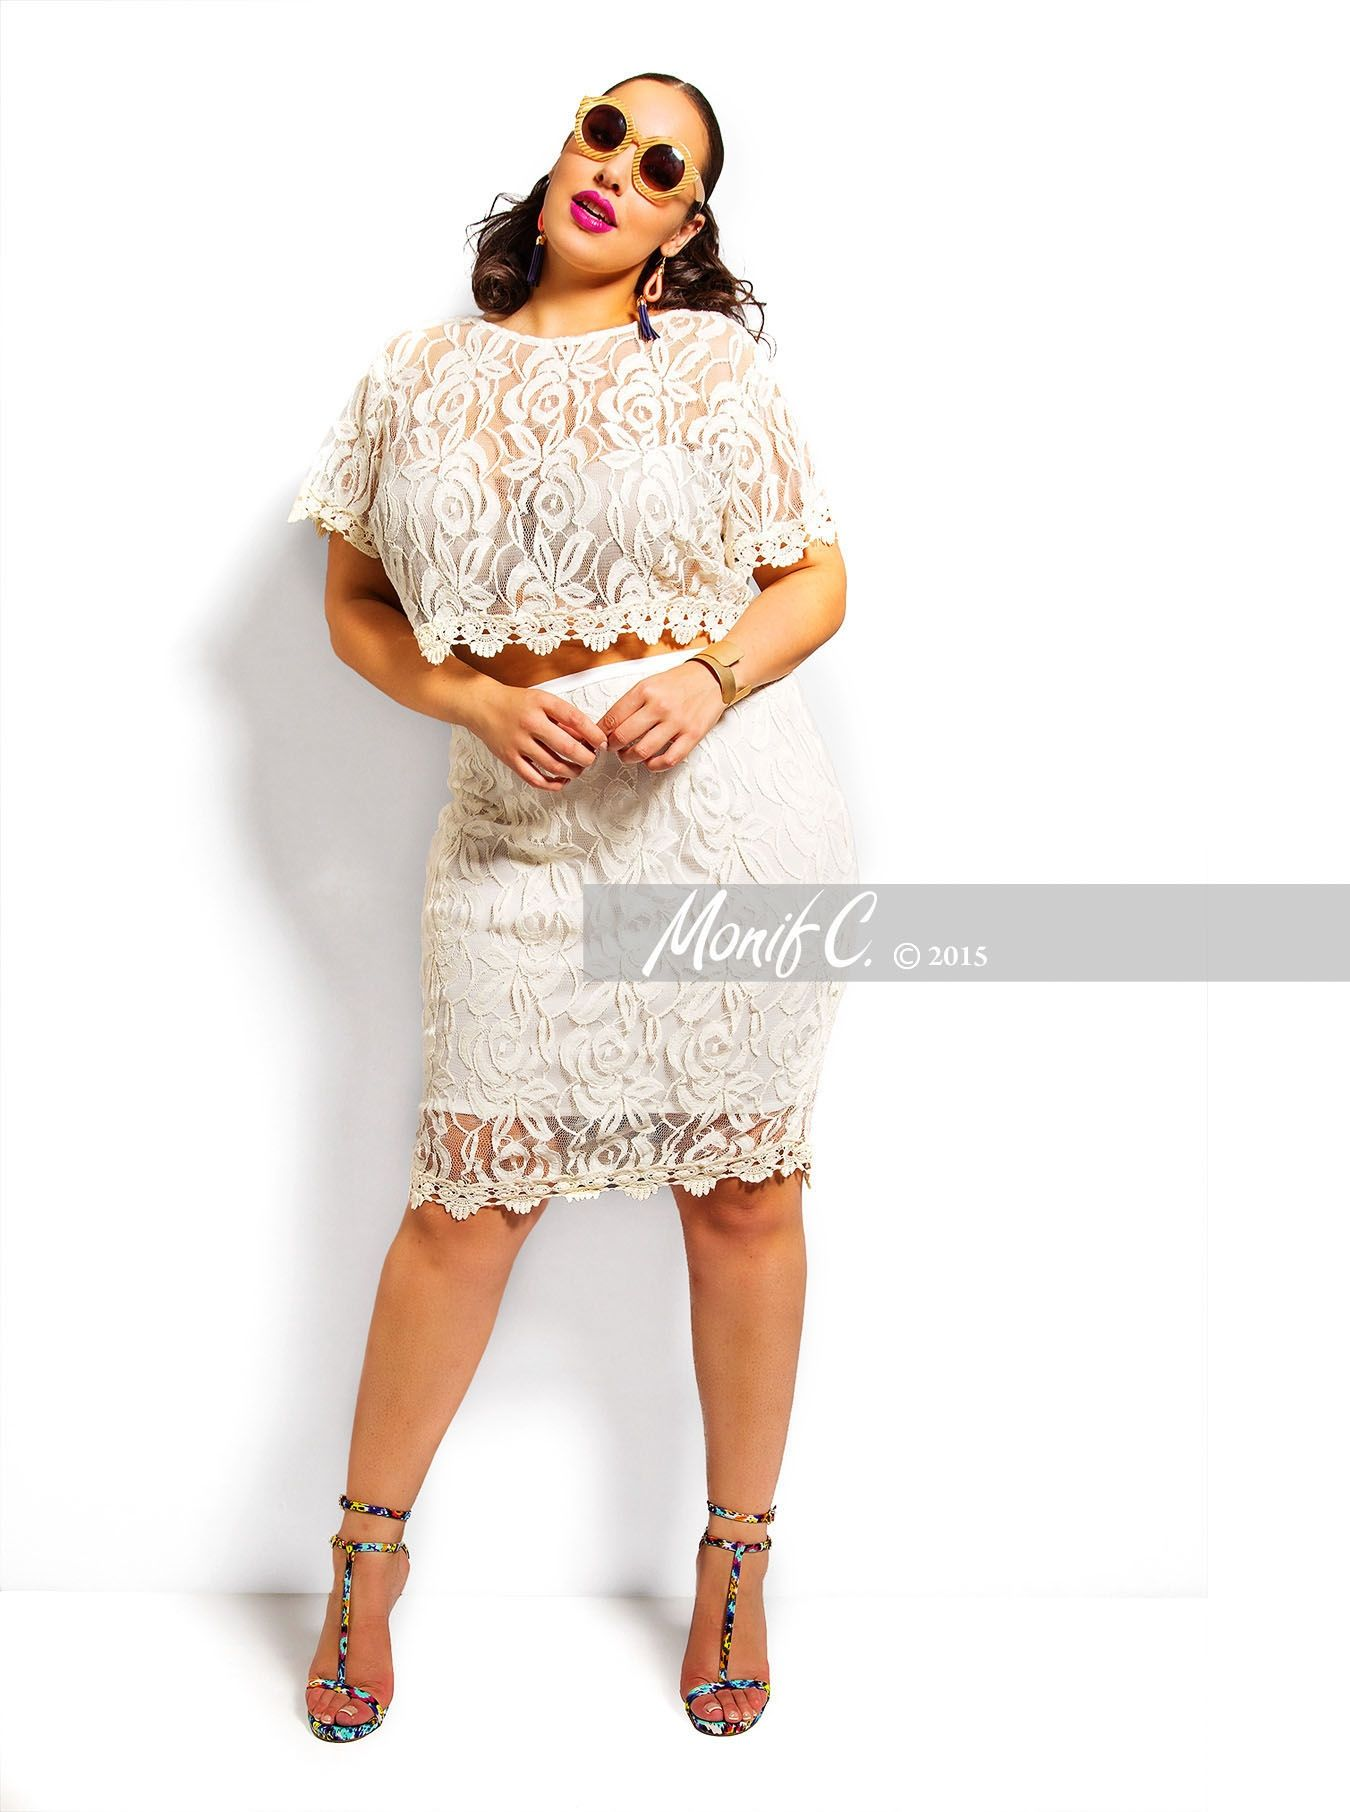 782b24cae2d Monif C Plus Size Lace Crop Top and Skirt outfit Perfect for a Wedding  Rehearsal